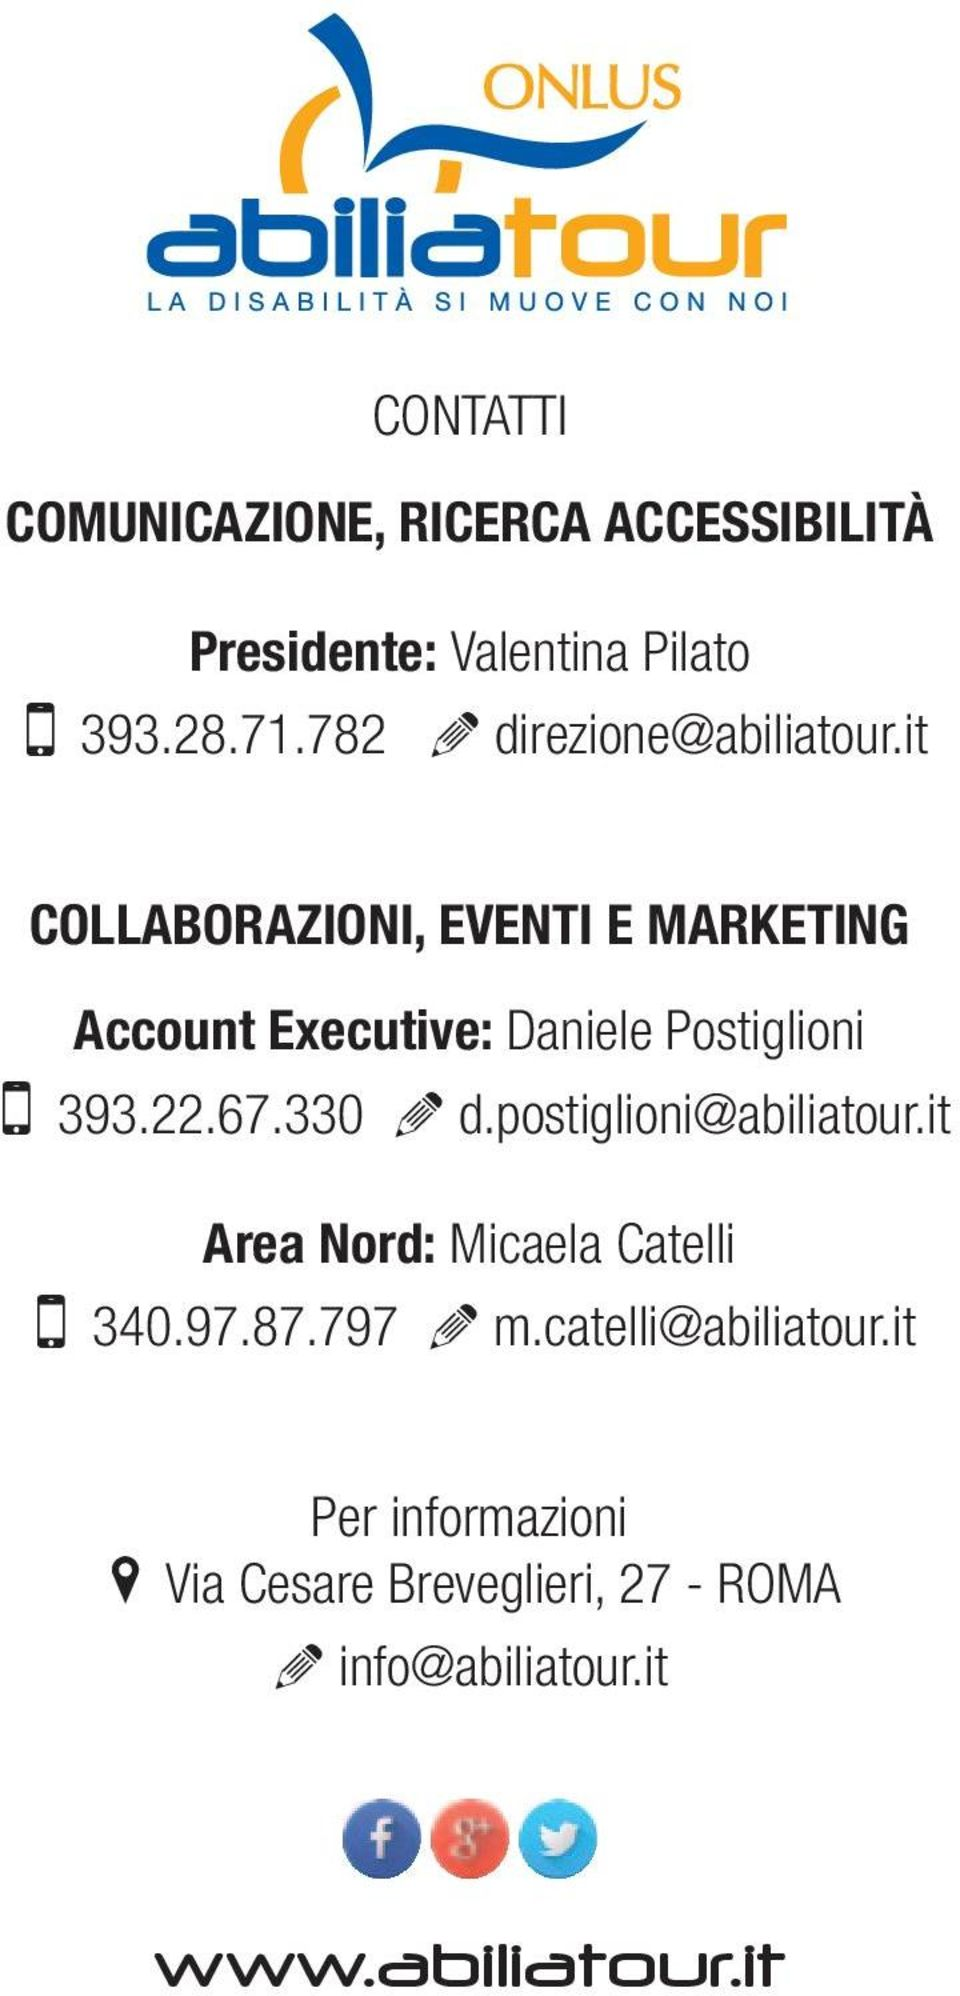 it COLLABORAZIONI, EVENTI E MARKETING Account Executive: Daniele Postiglioni 5 393.22.67.330 a d.